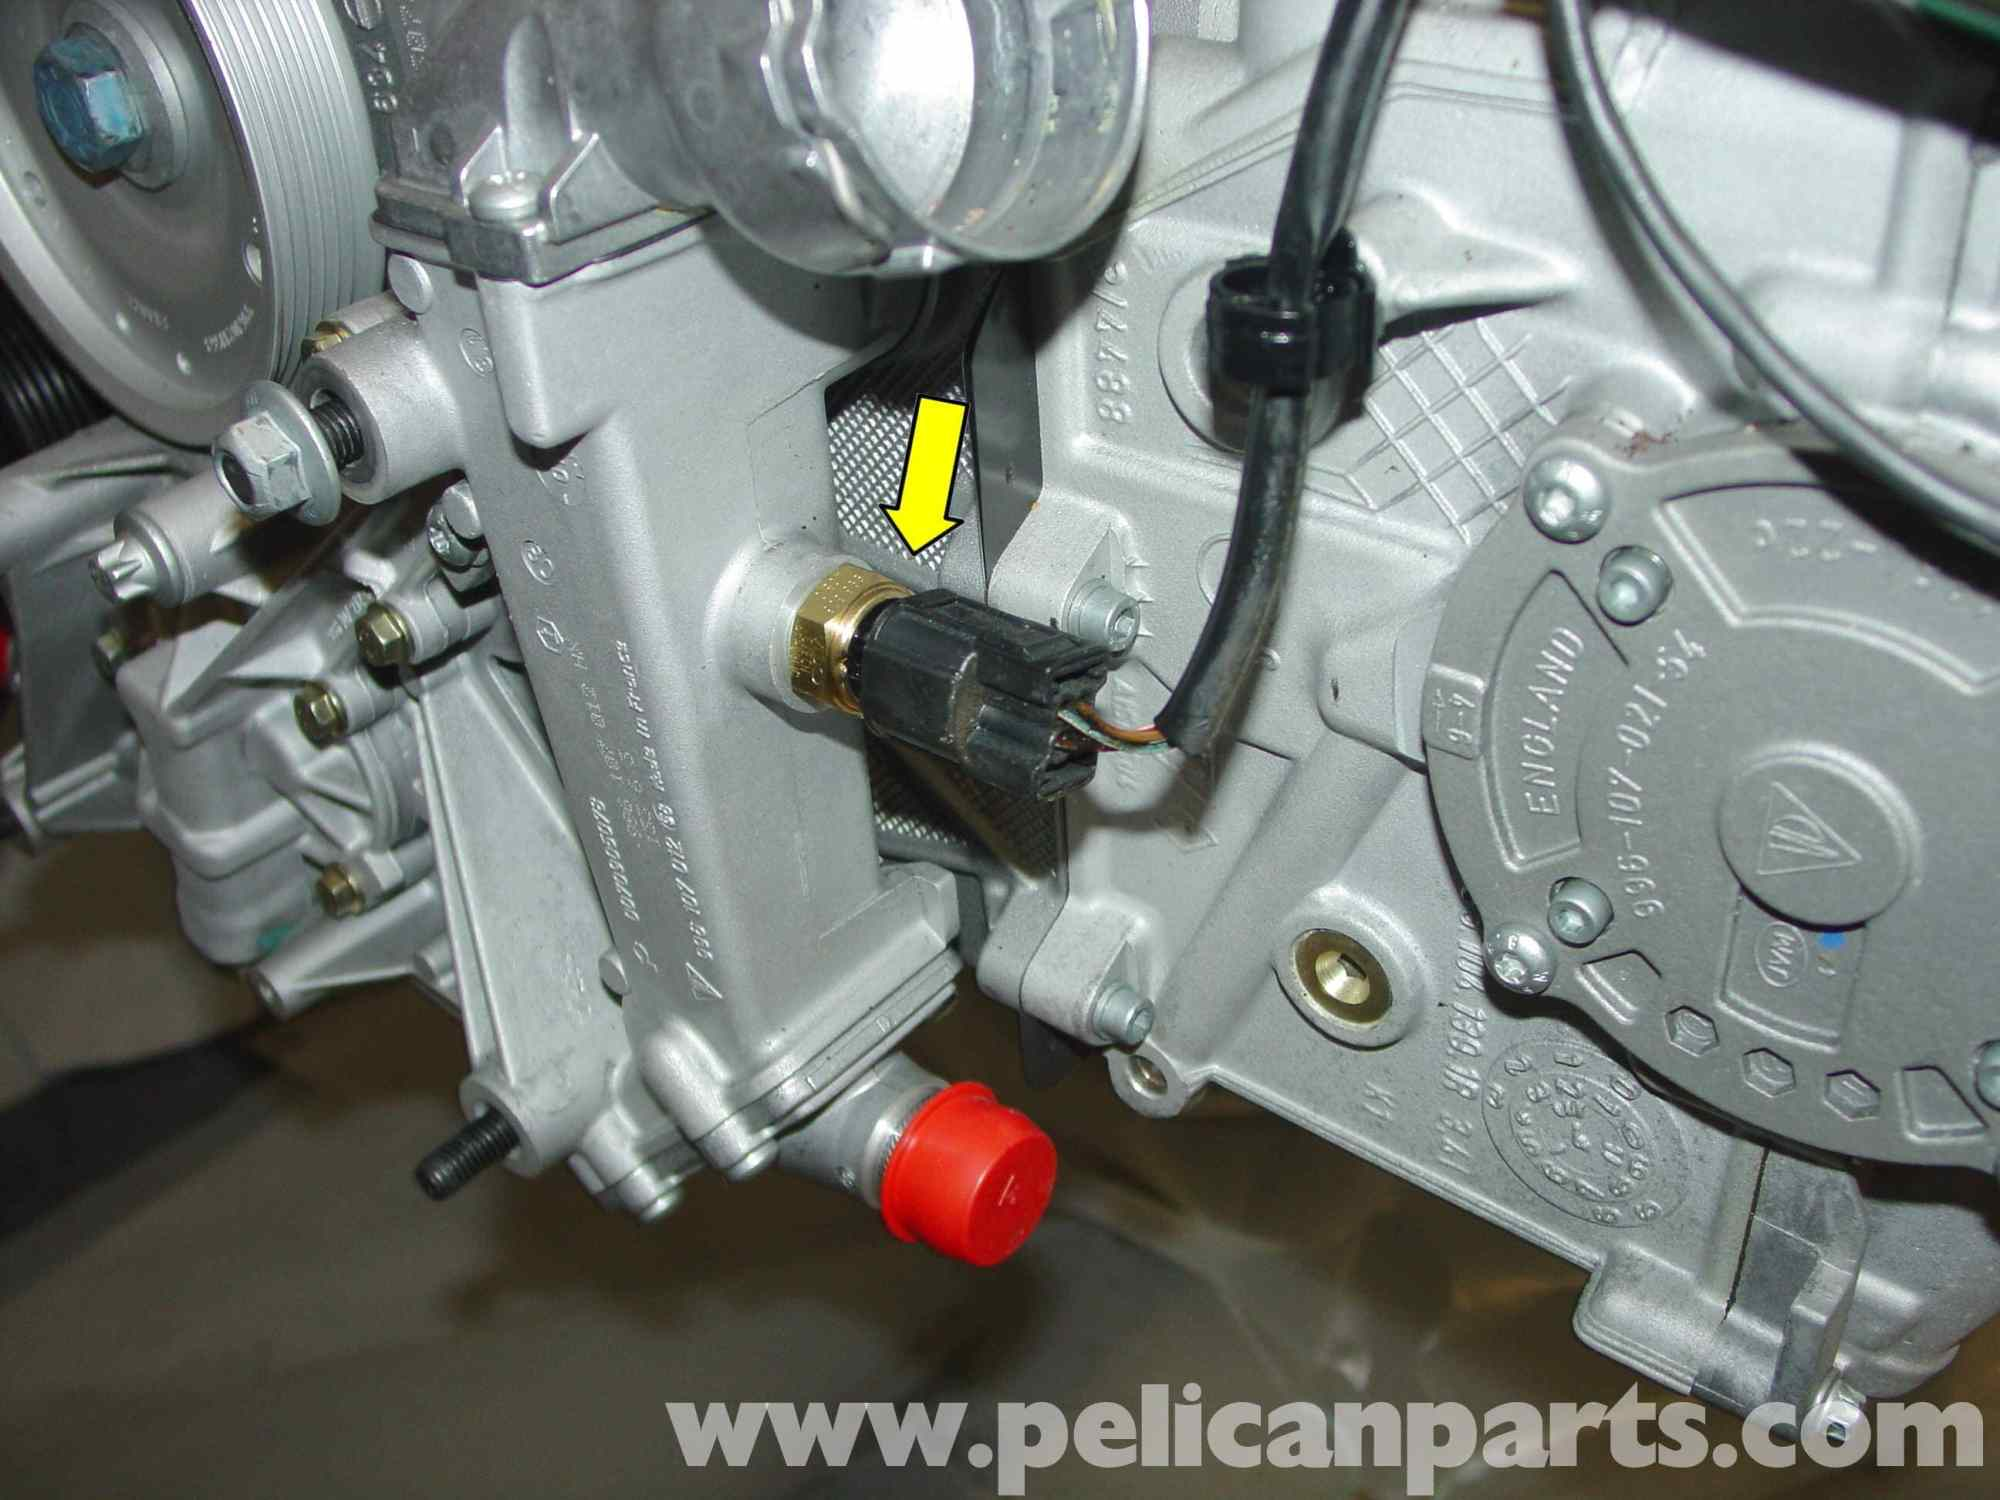 hight resolution of 1989 ford taurus wiring diagram images gallery porsche boxster engine sensor replacement 986 987